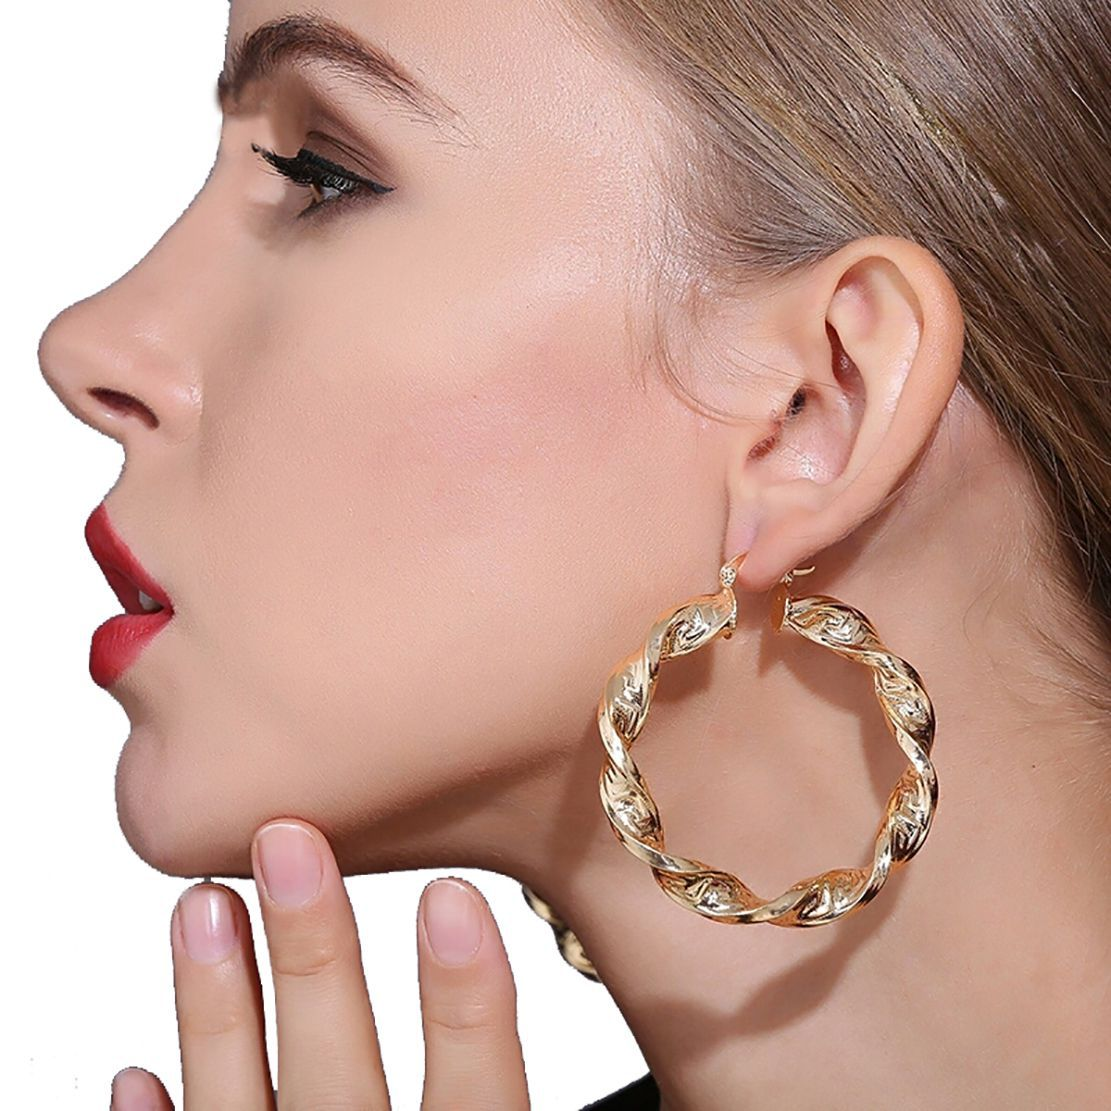 Ziory 18K Gold plated Metal Twisted Hoop Round fashion Party Earrings Women Golden Gold Plated Oval Hoop Big Earrings Copper Ear Studs For Girls and Women